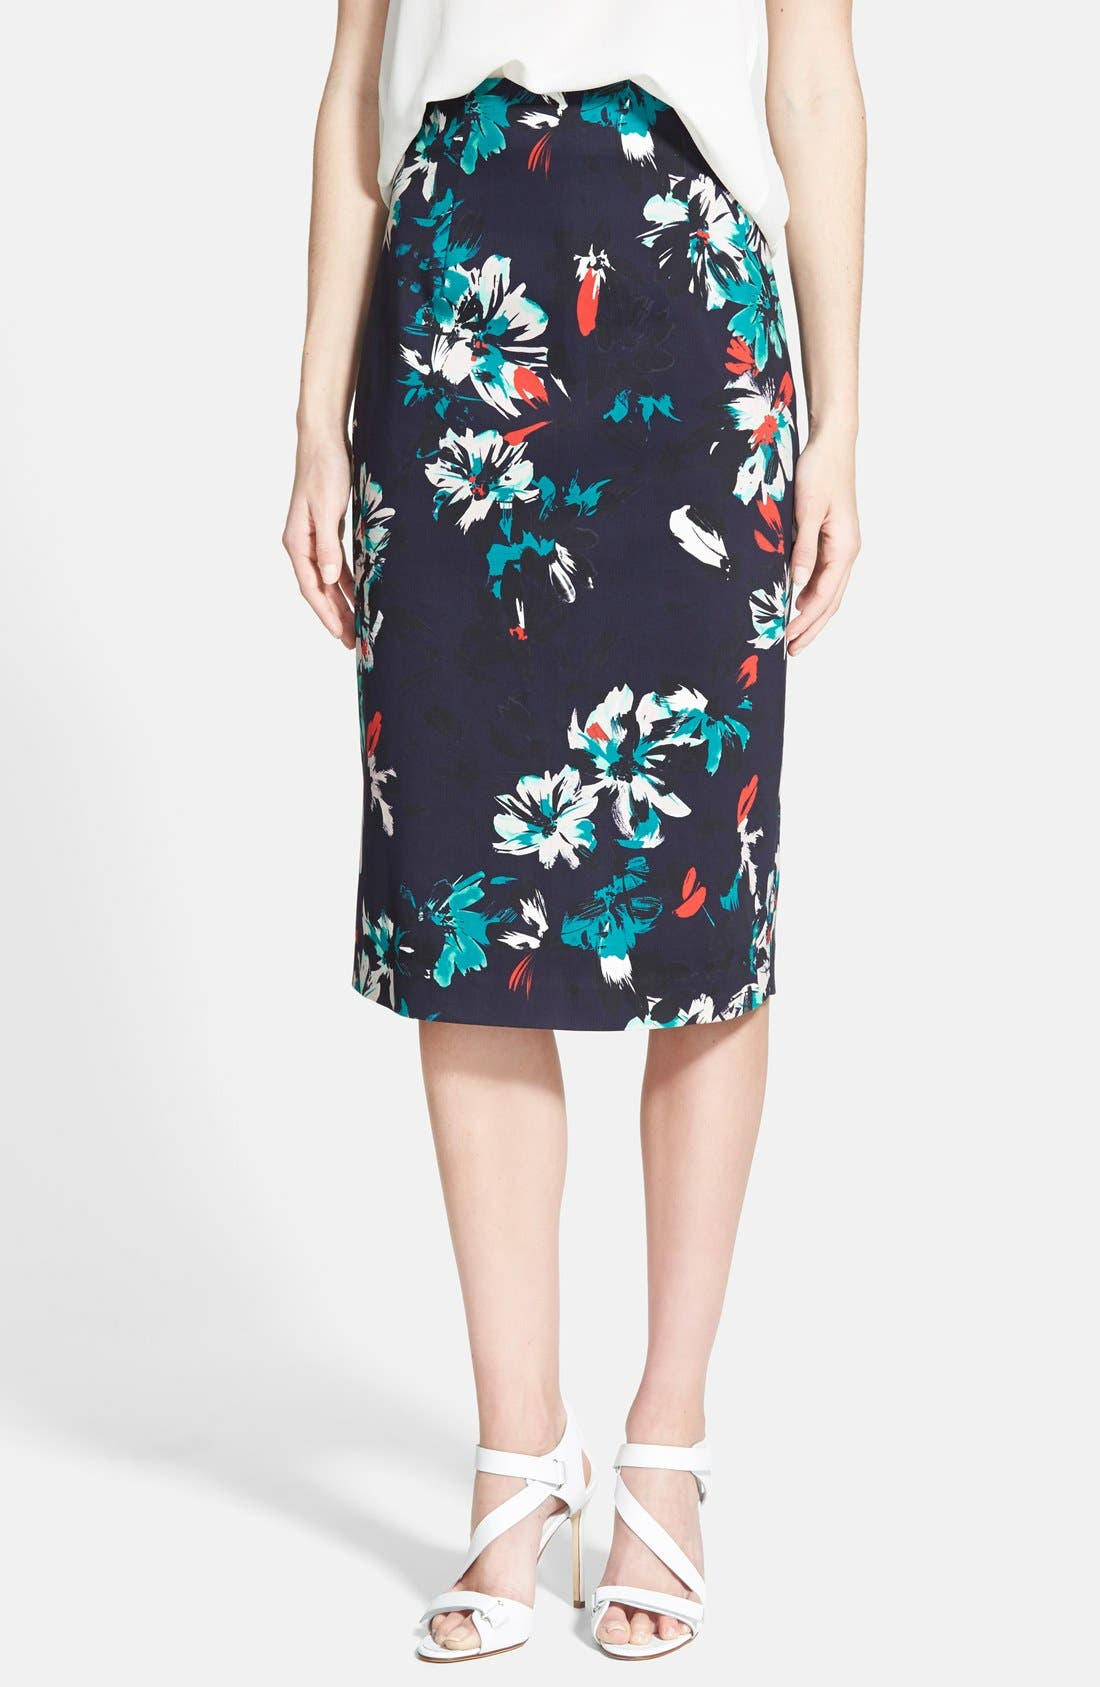 Chelsea28 High Waist Floral Pencil Skirt | Nordstrom